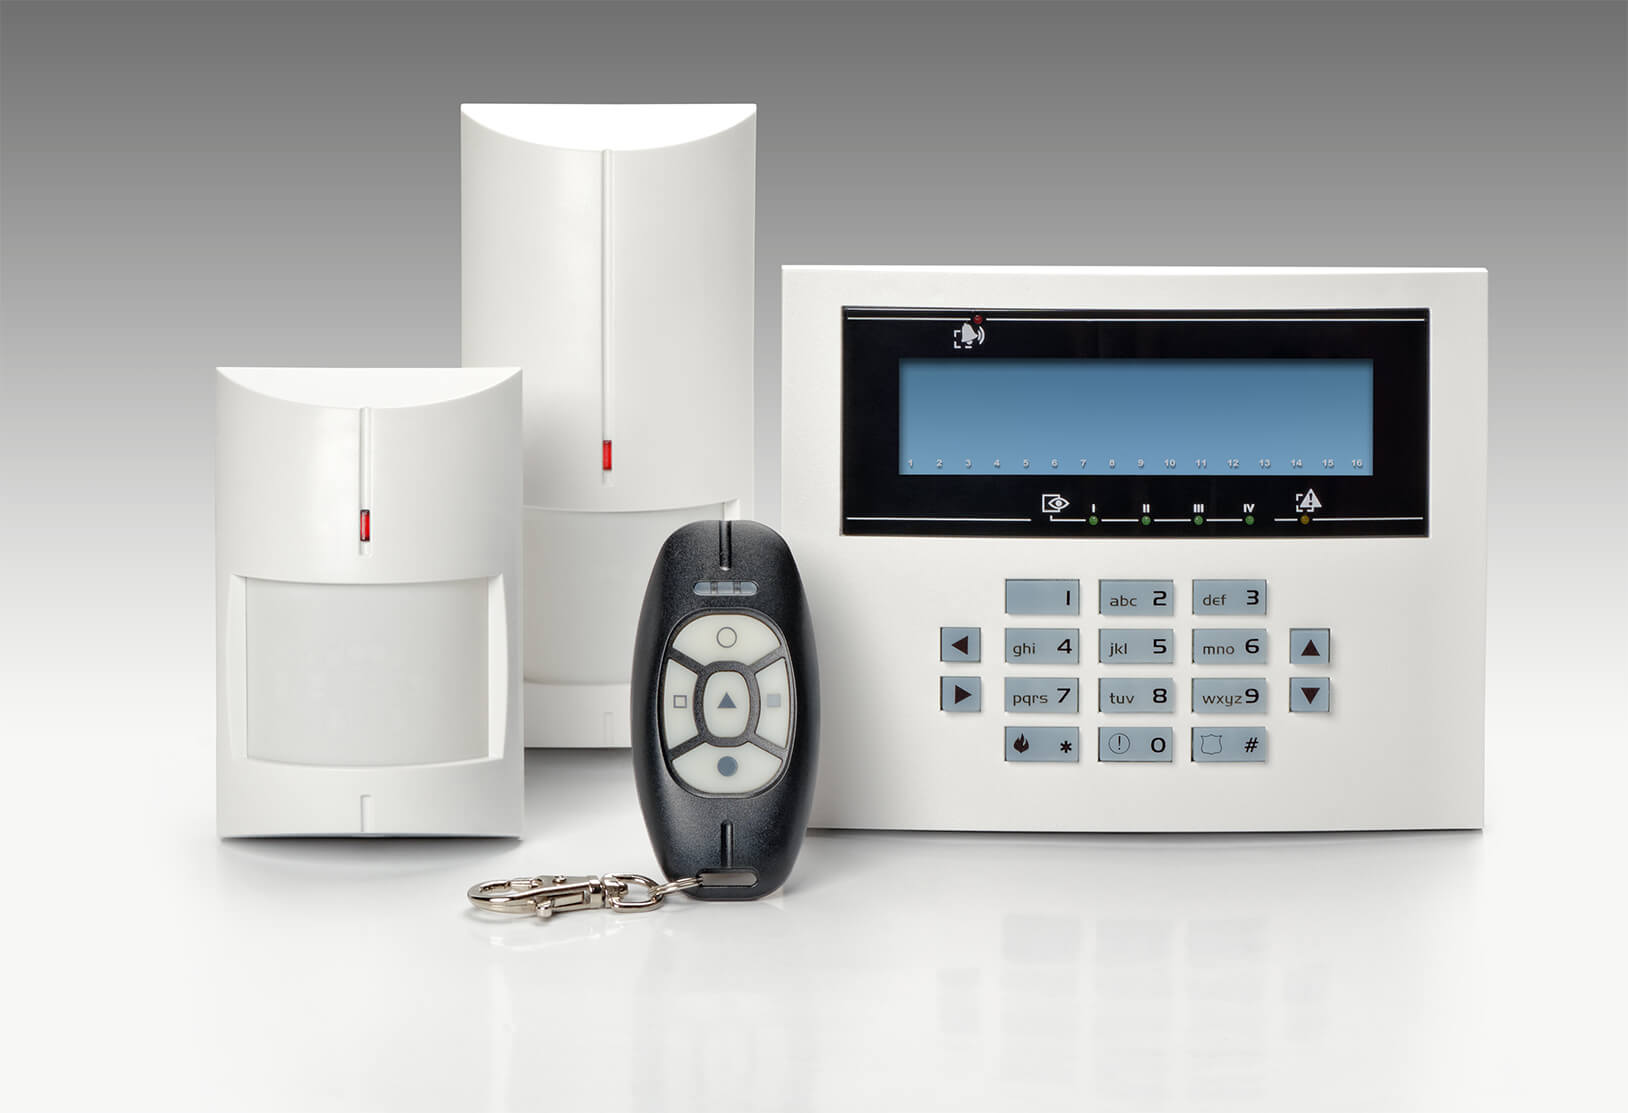 Burglar Alarms Repair in Poplar E15 - Local Poplar E15 alarm engineers.Call 02078872244 - See cost/price for burglar alarm repair and book your alarm engineer. No Hidden charges,No Contracts, Book as you need.Engineers on demand.All alarm makes repaired.Same day service ability.